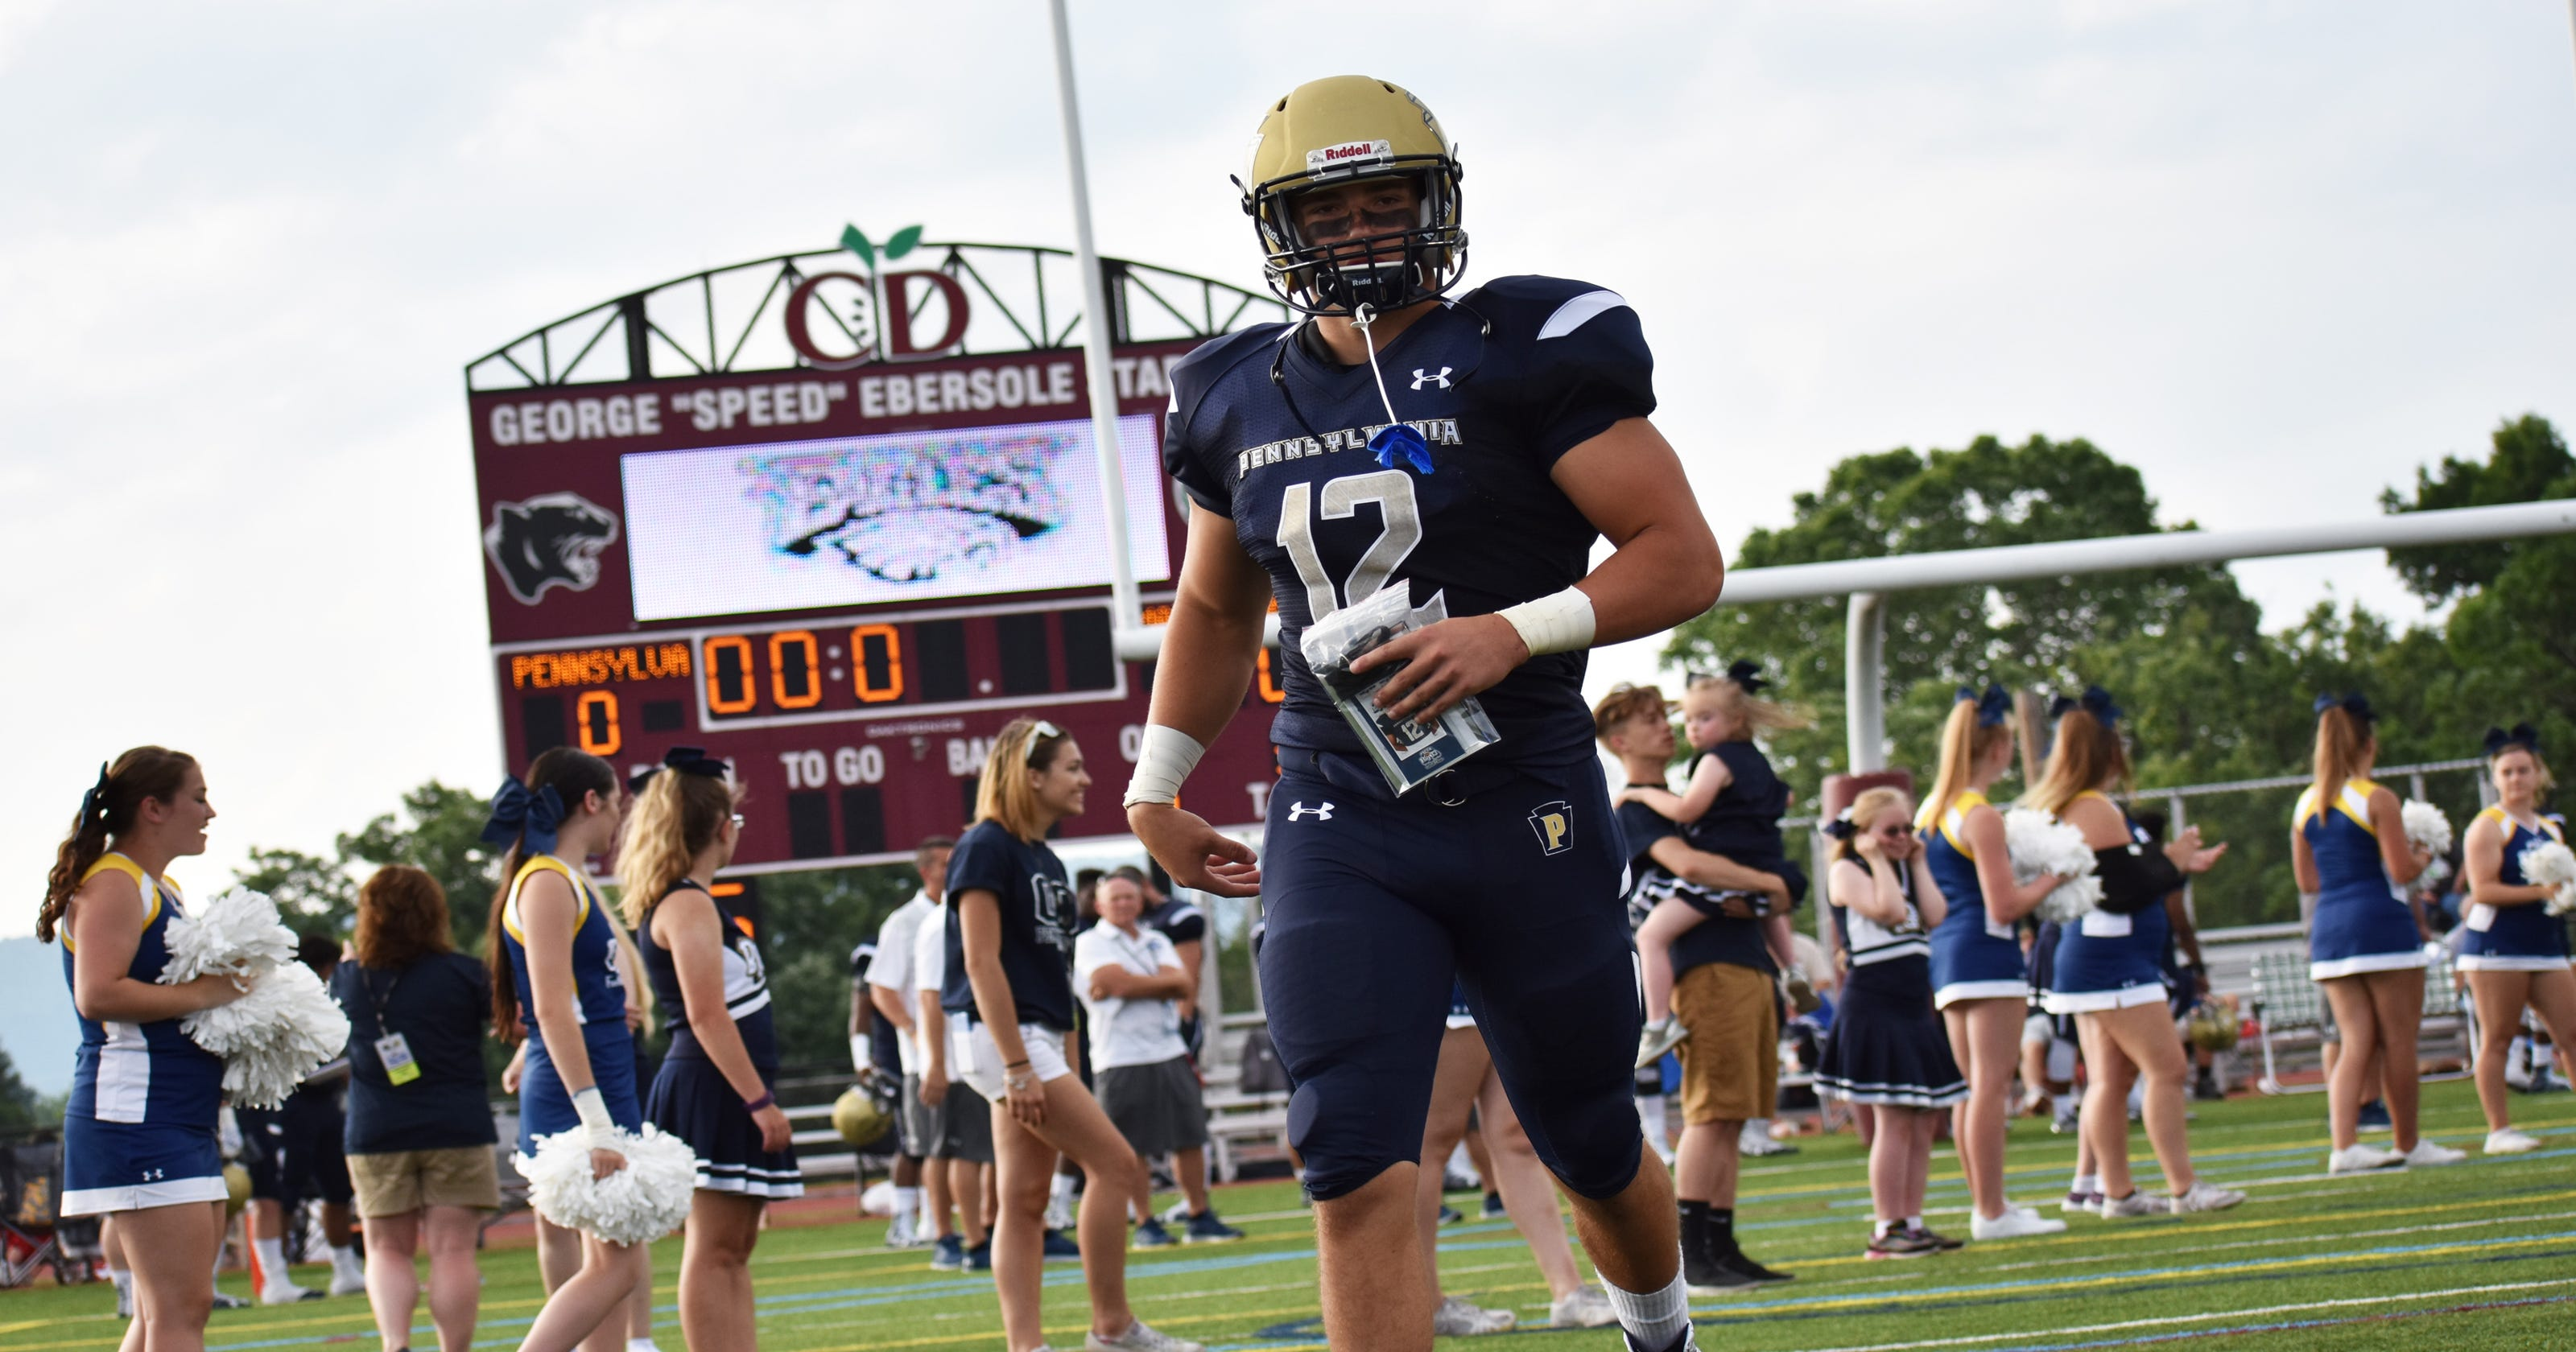 Forrest Rhyne aids PA to 44-33 win in Big 33 classic